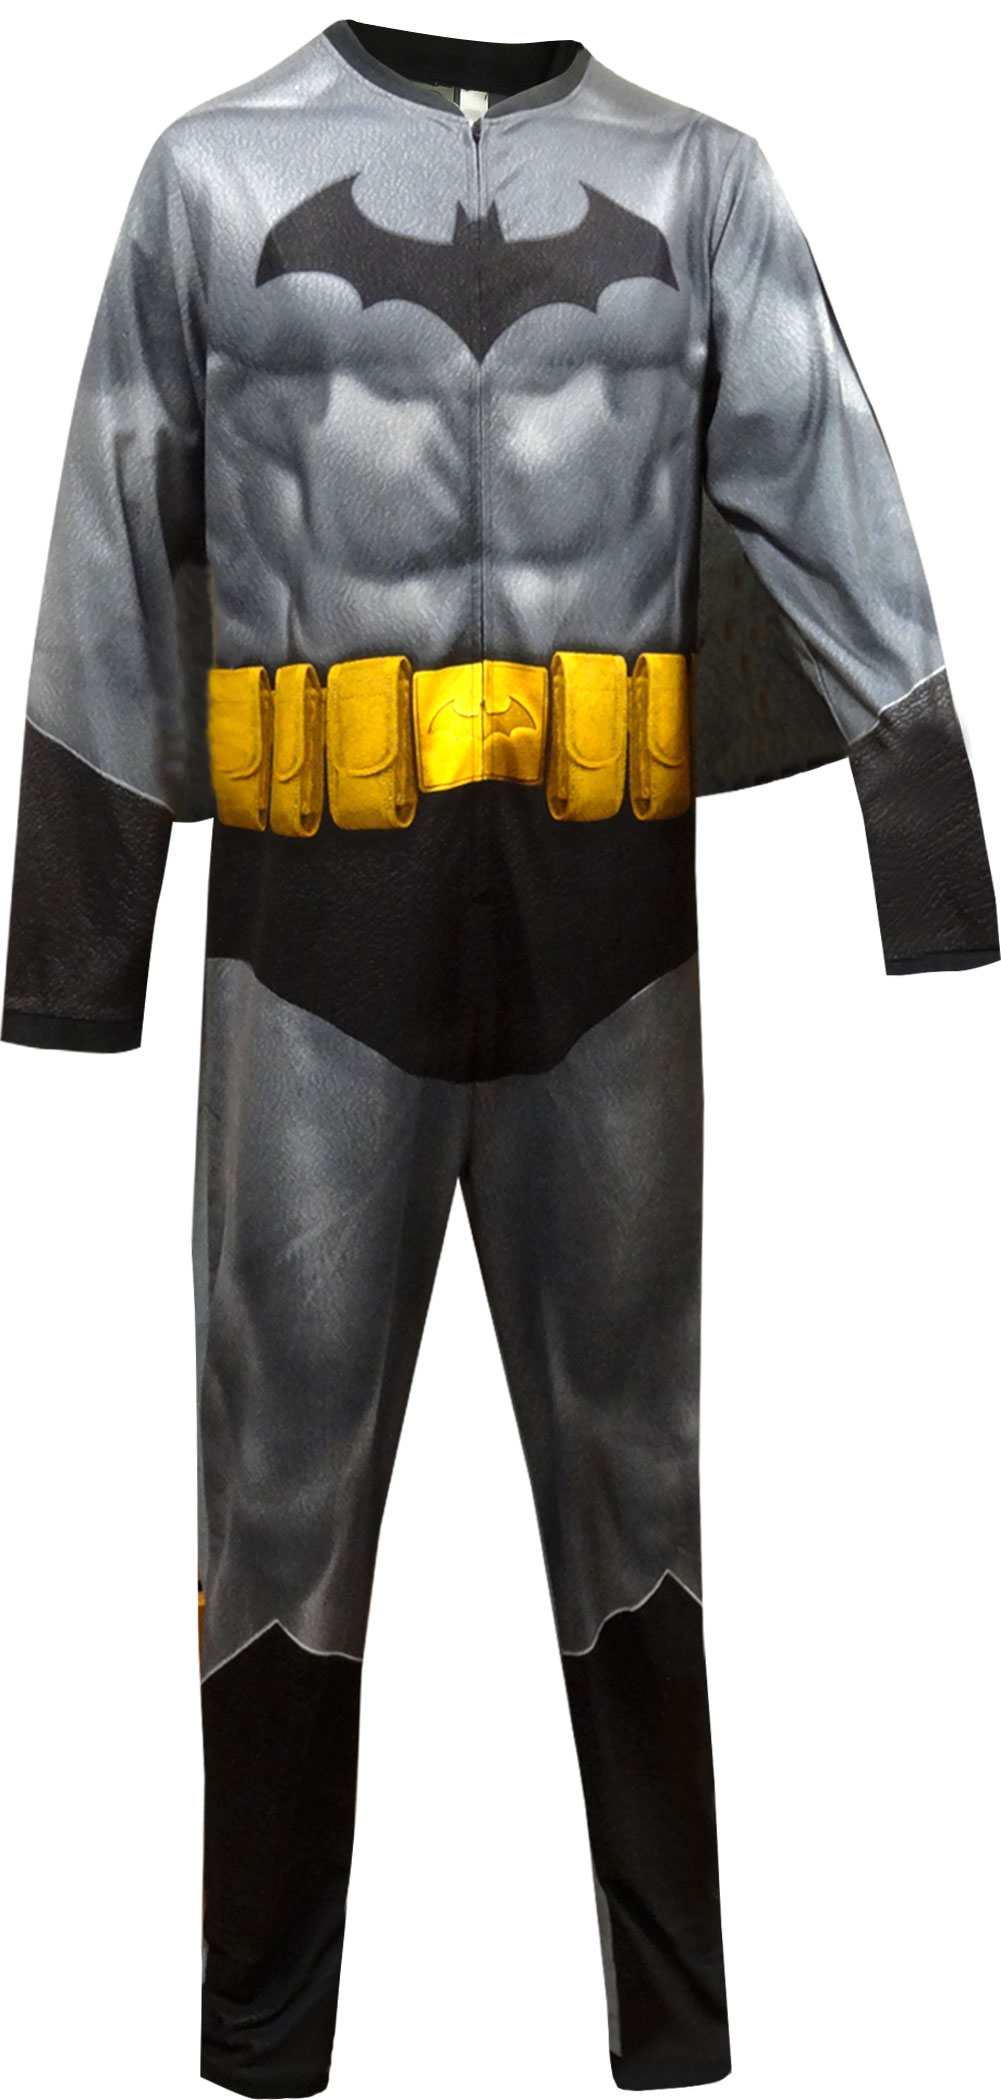 Image of Batman Fleece One Piece Union Suit Pajama with Cape for men